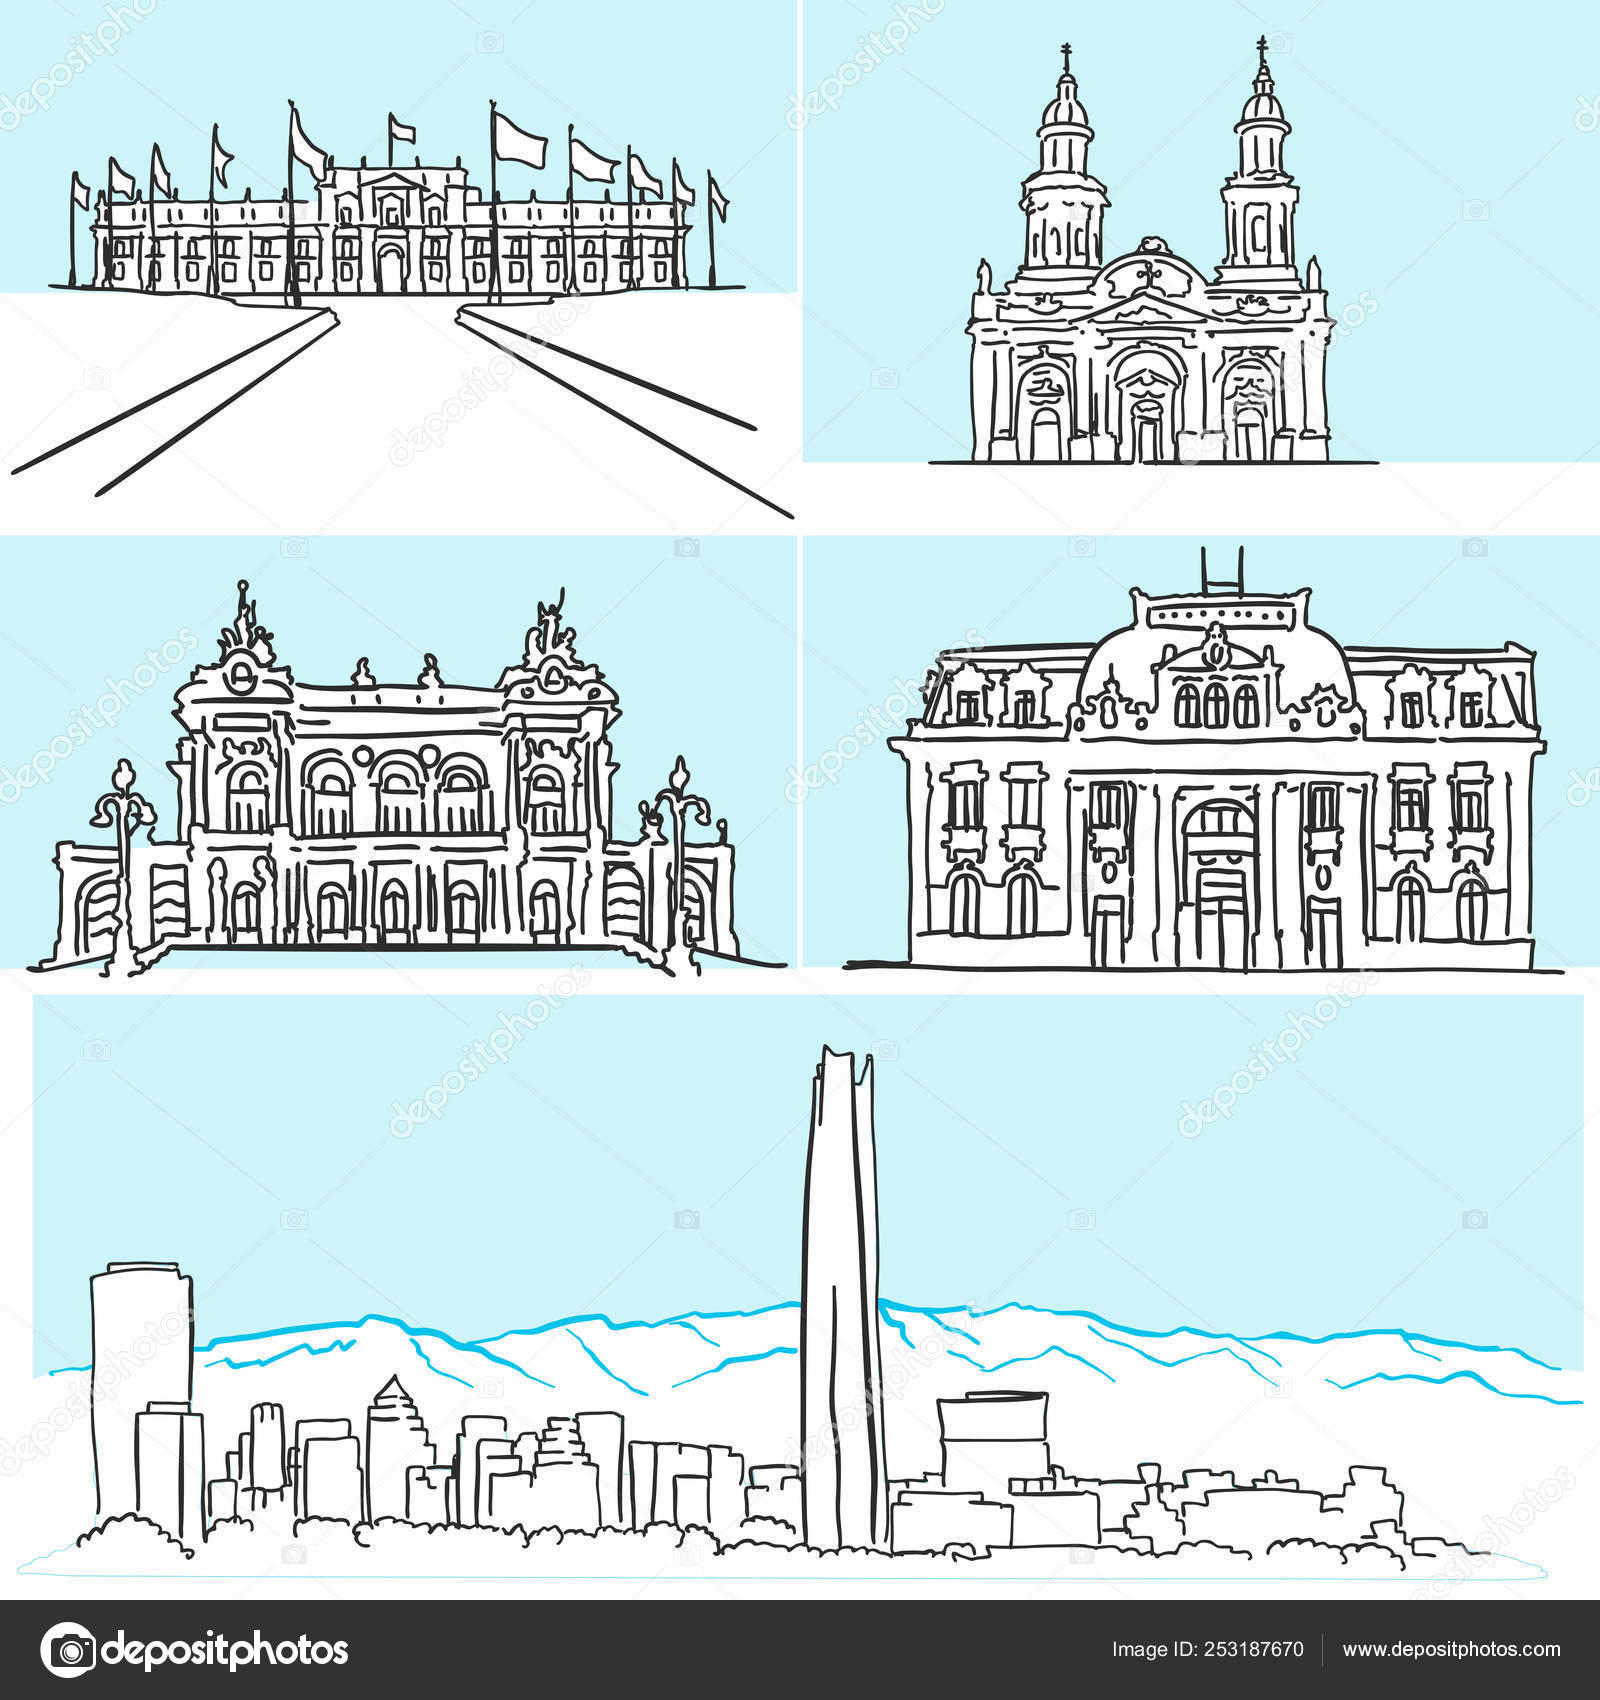 Santiago Chile famous architecture drawings by hand — Stock